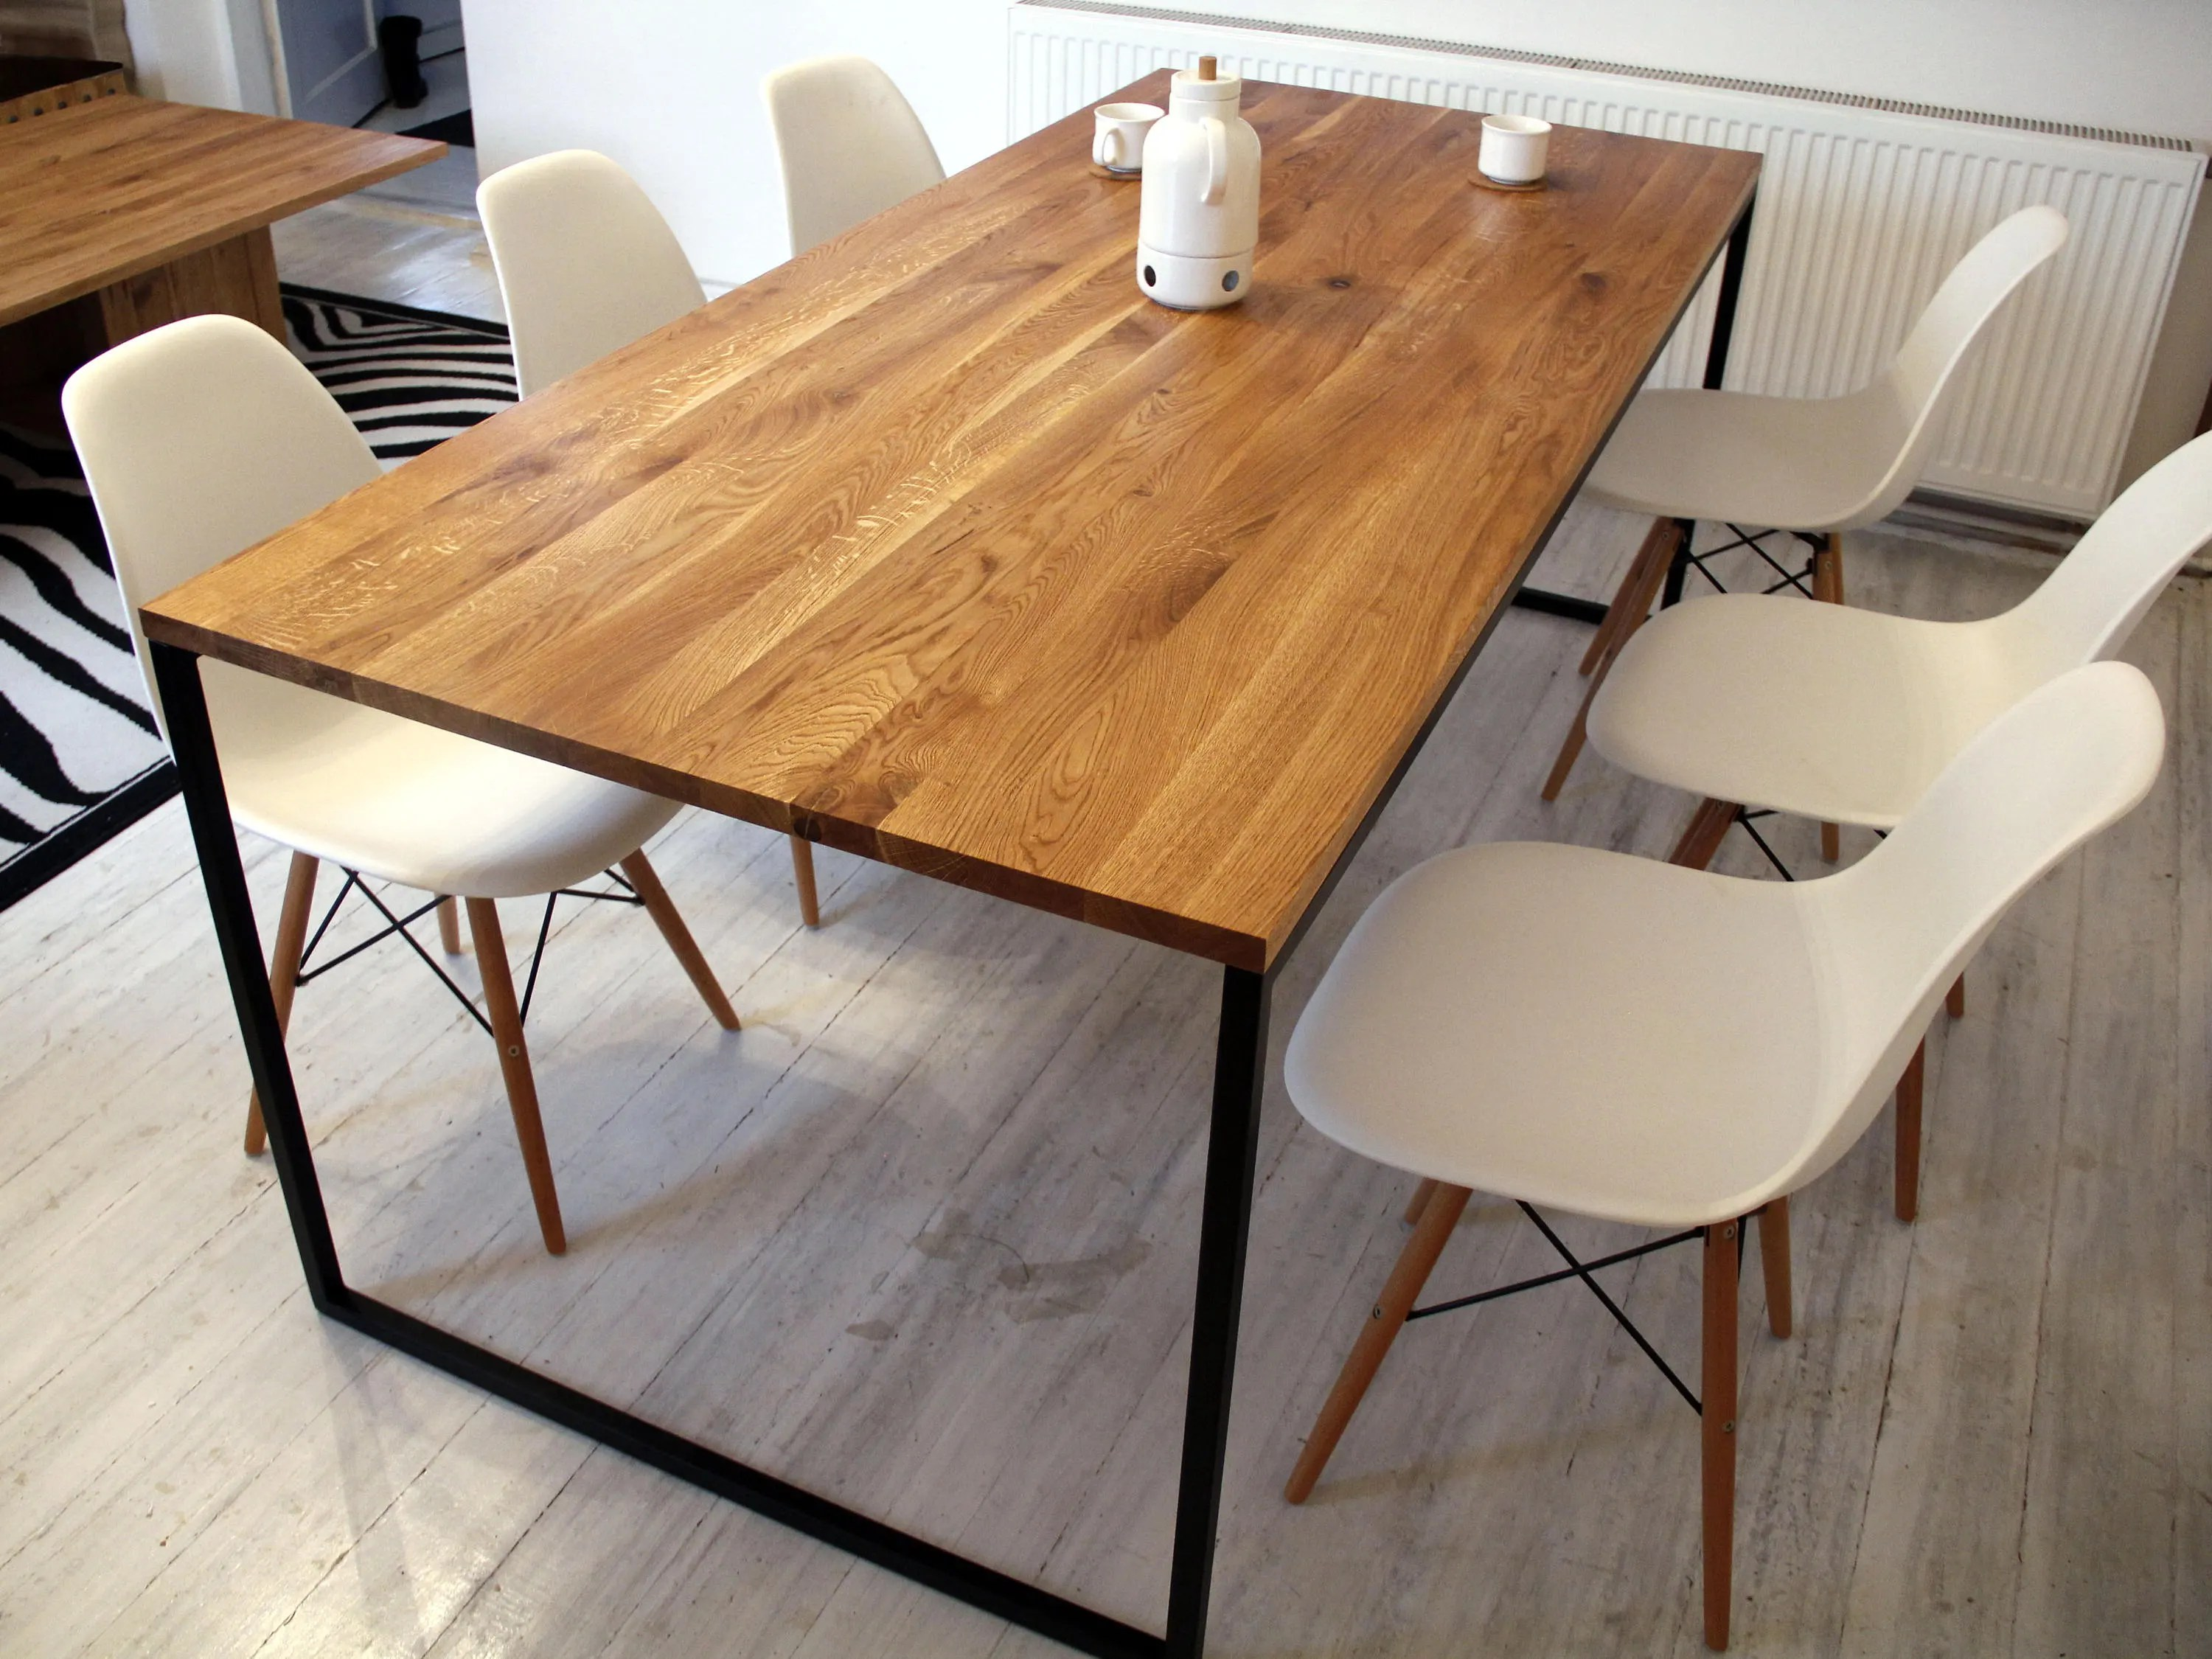 kitchen table top work station steel frame dining basic nio ii modern industrial etsy image 0